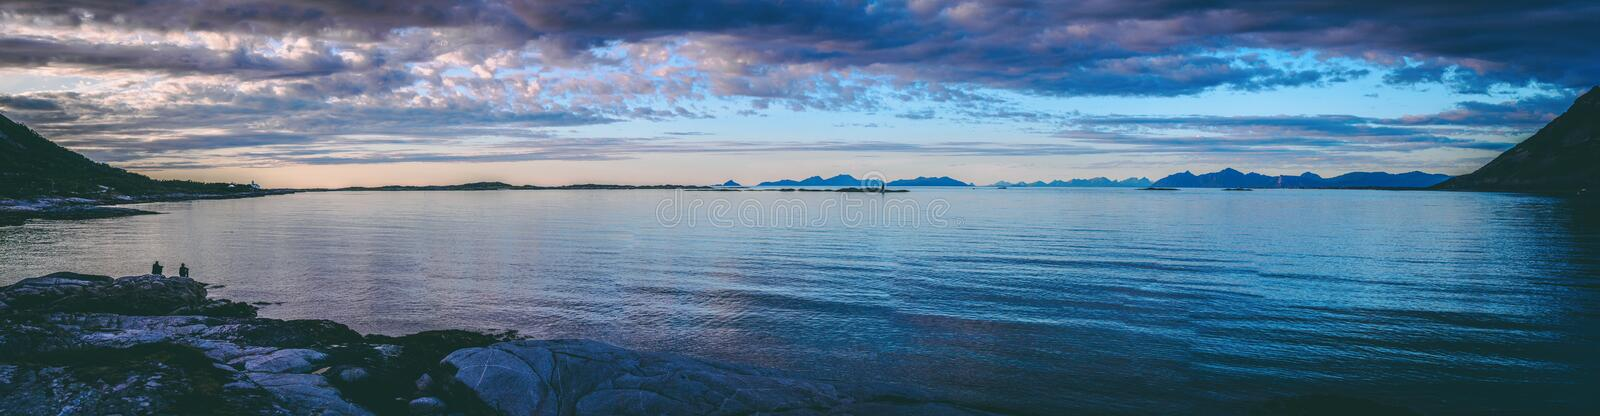 Panoramic photo of people sitting on a rocky seashore at sunset in Norway. In the evening stock photography